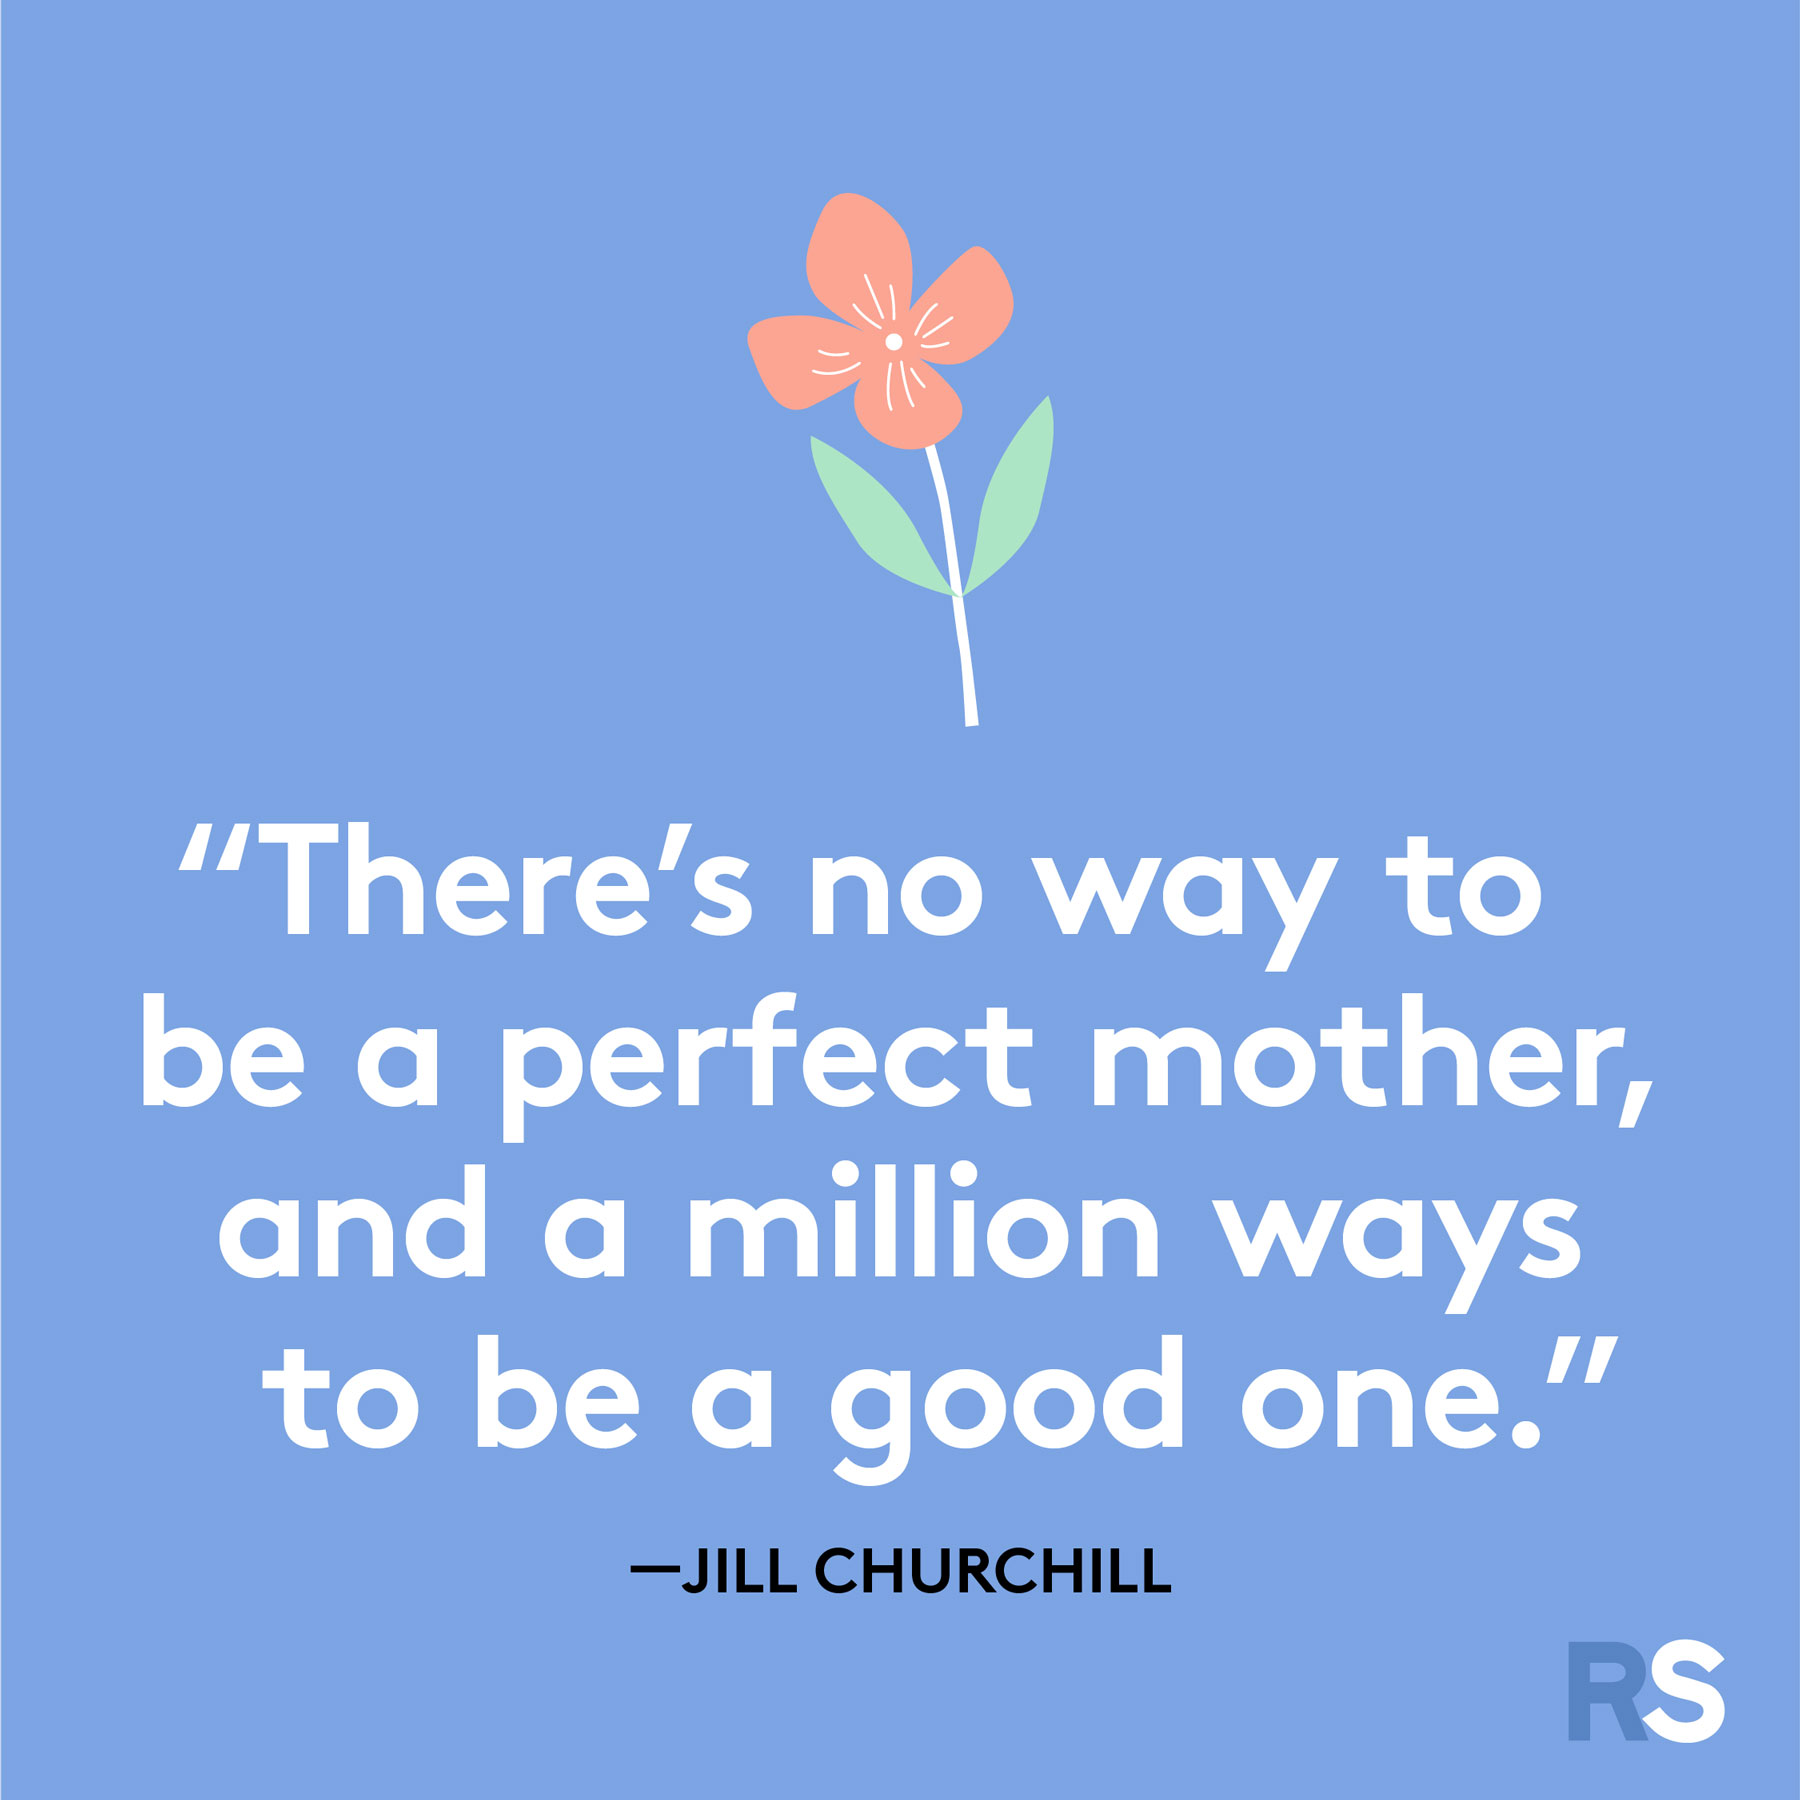 Mother's Day quotes and sayings - quote by Jill Churchill